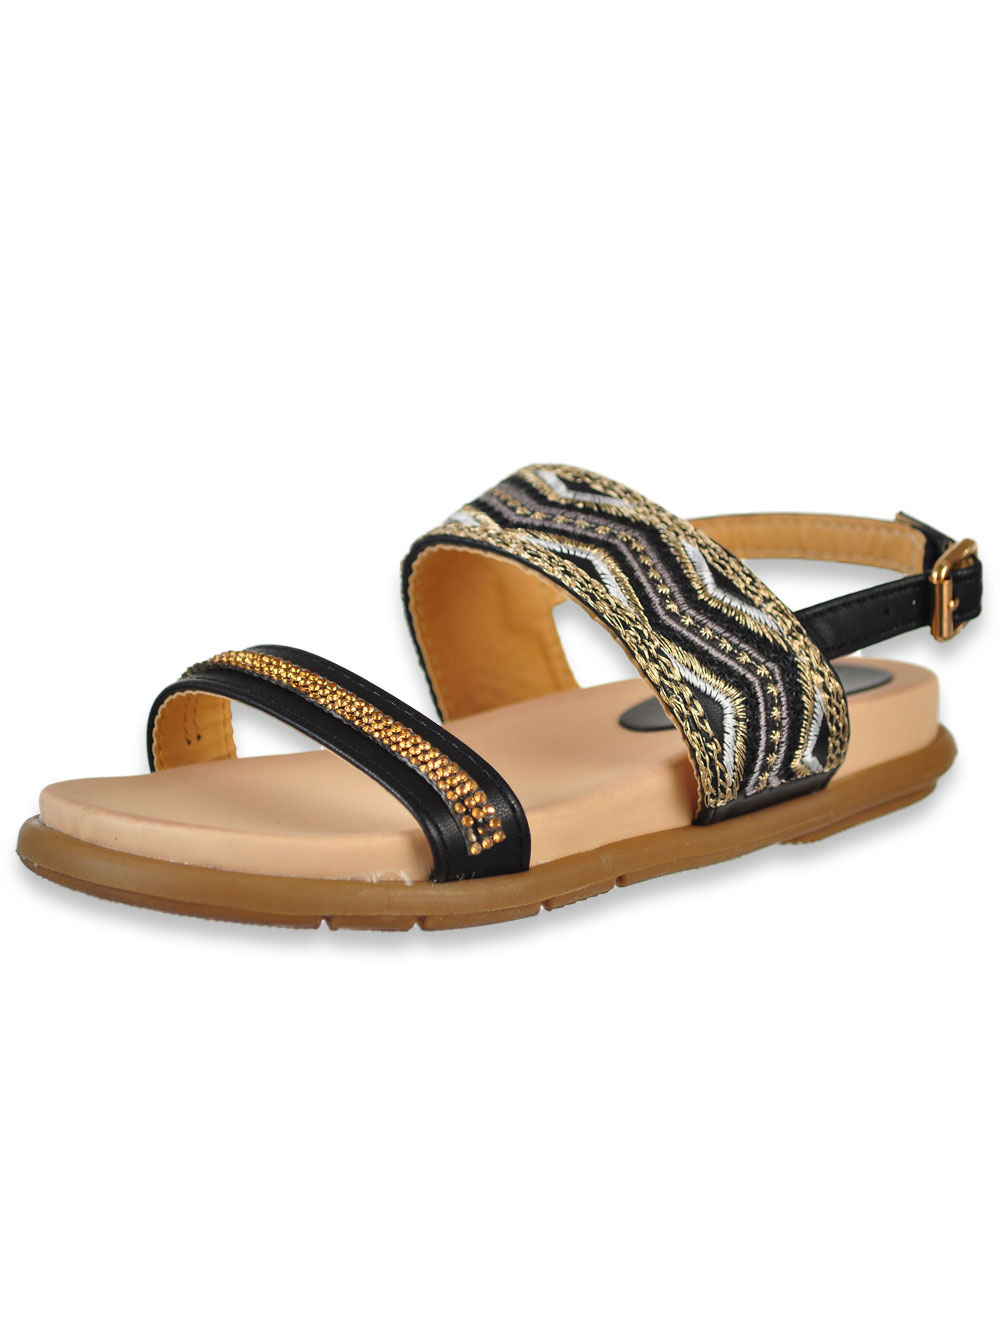 Girls Tan Sandals